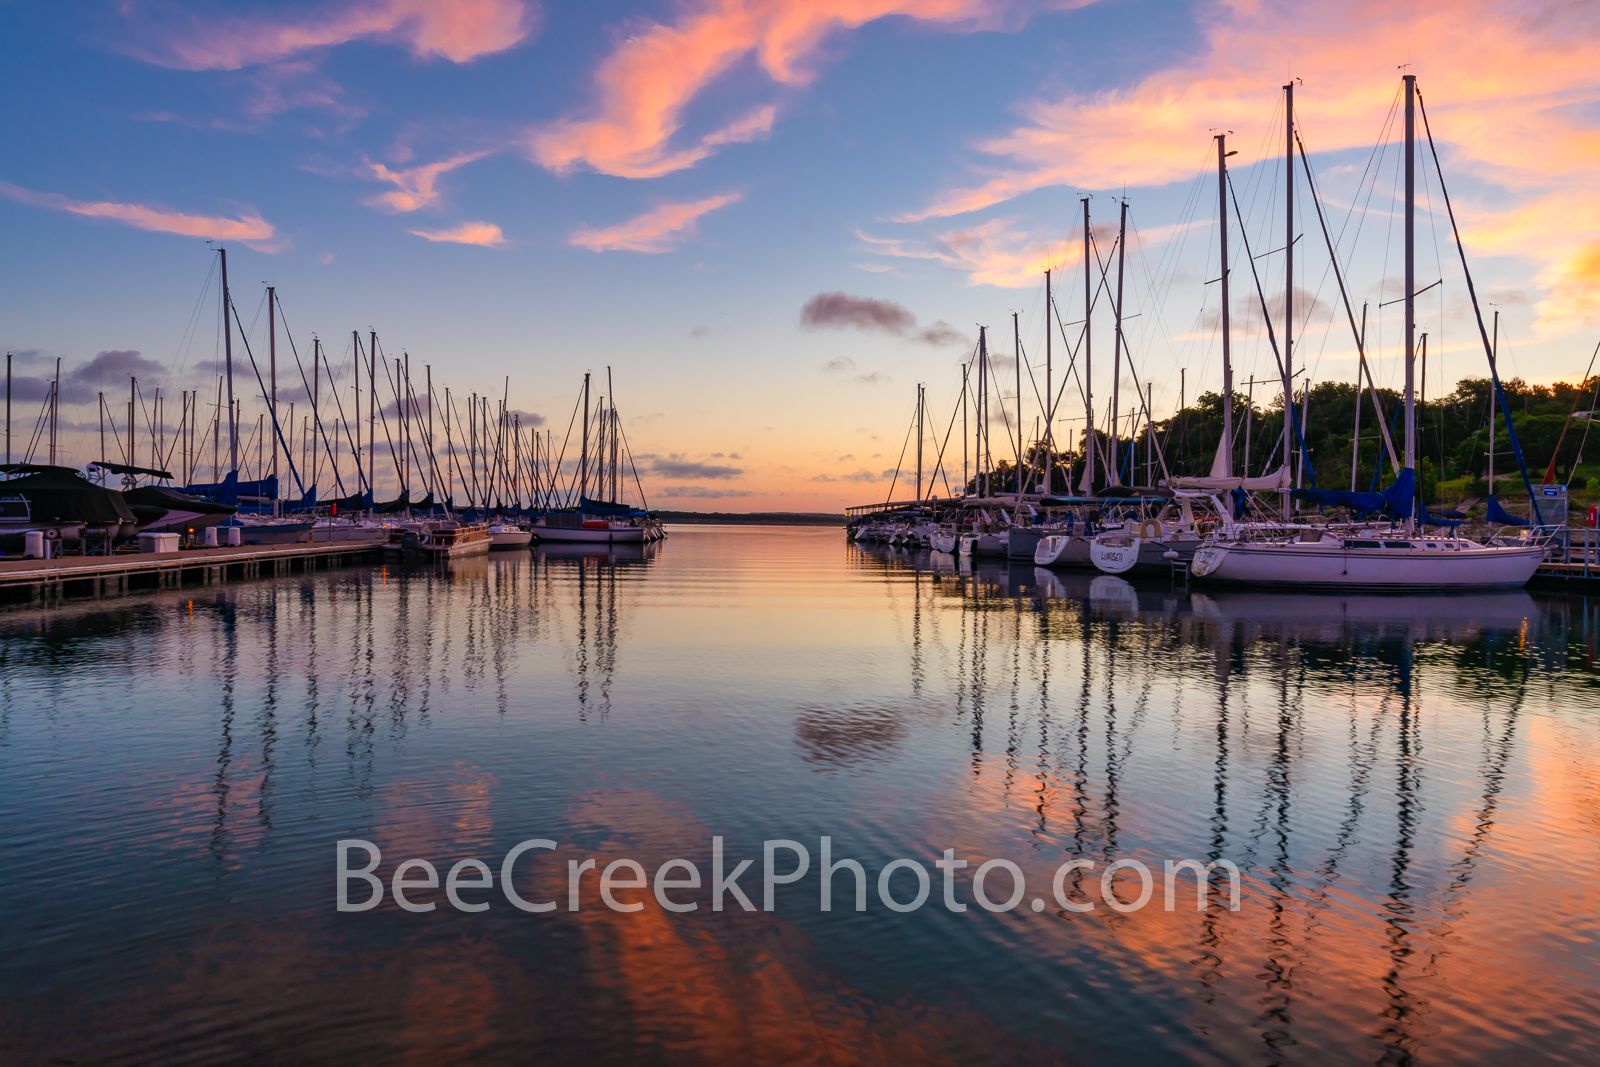 Lake Travis Sunrise - In the early morning right before the sun came up we capture the sunrise colors over this marina on Lake...